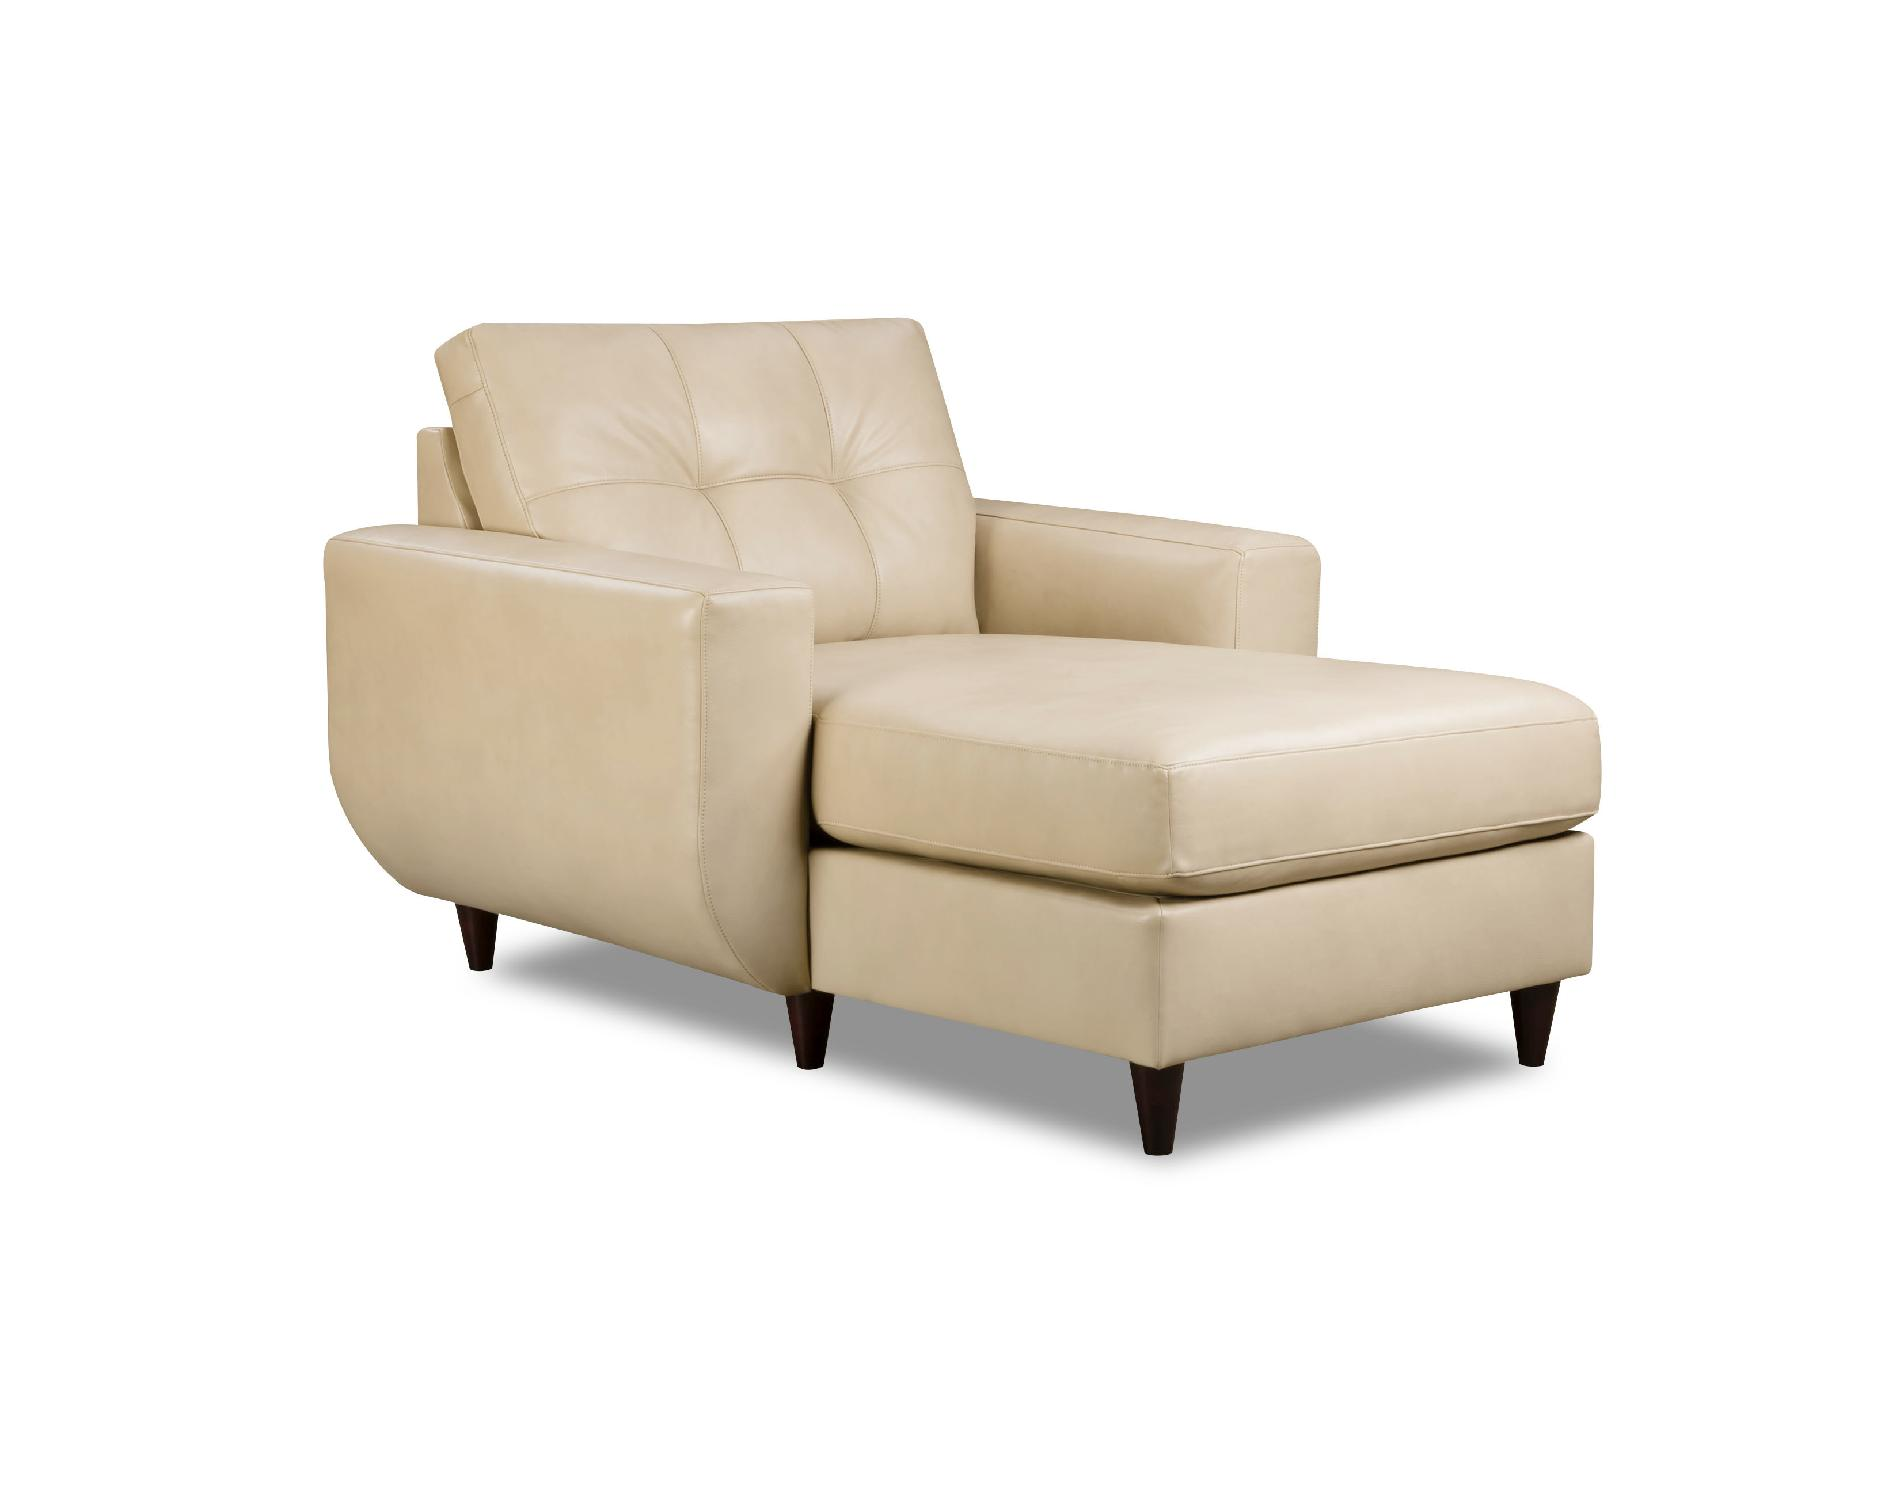 simmons bonded leather sofa ivory decorating ideas off white chaise lounge shop your